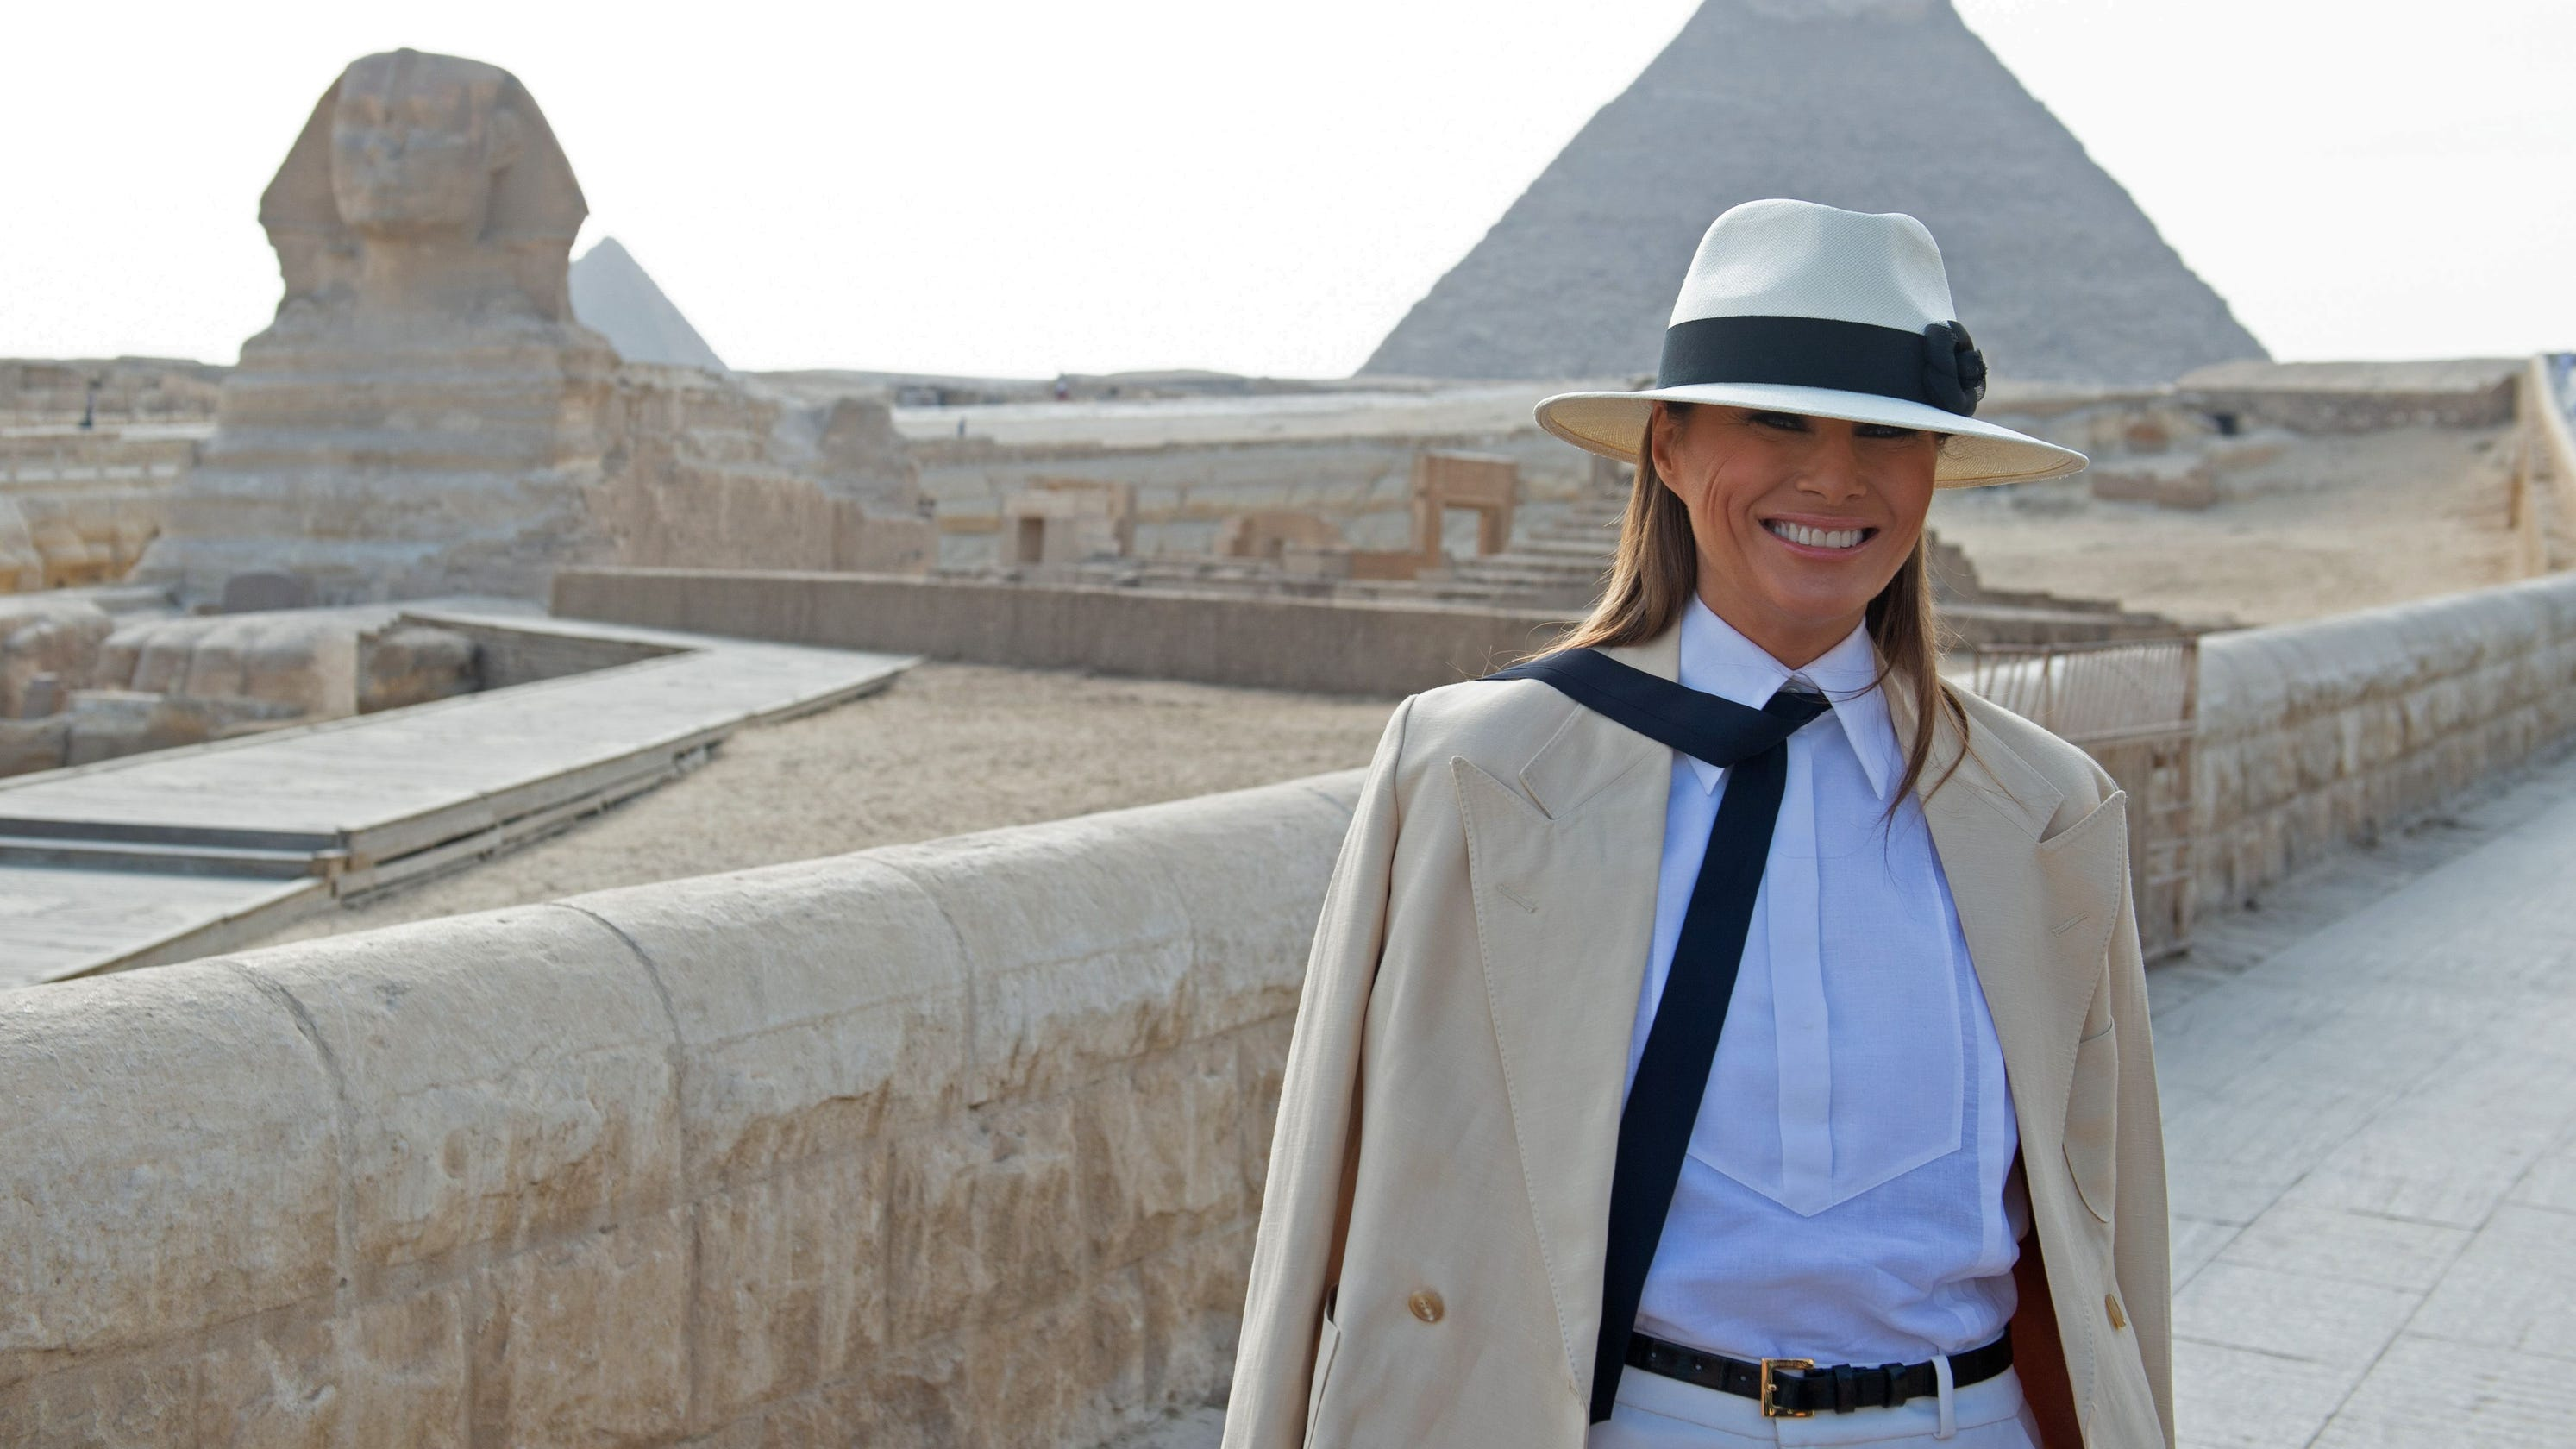 aafb864482b Melania Trump says controversial jacket was for  left-winged media